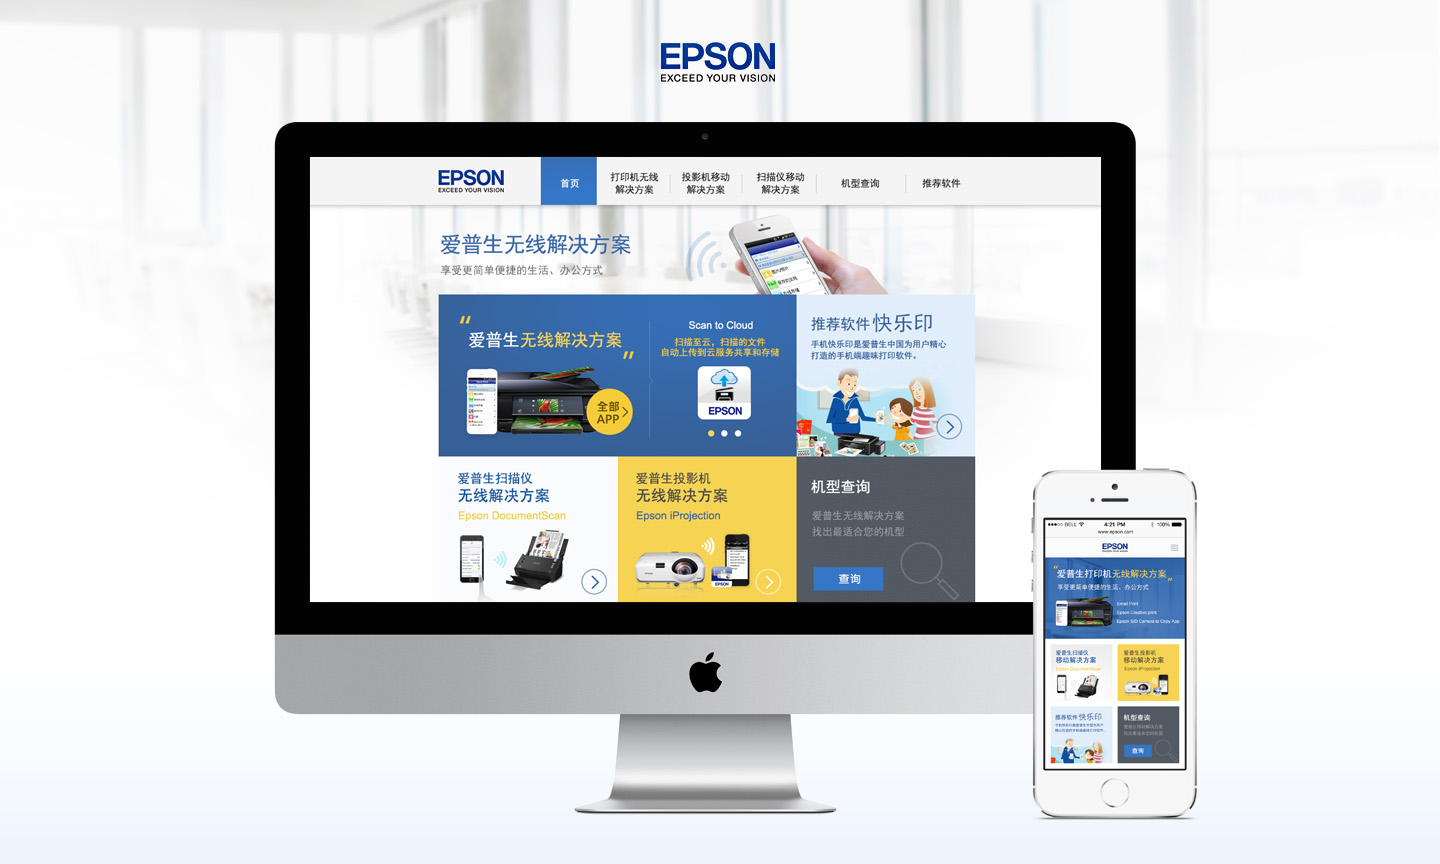 epson-wireless-detail1